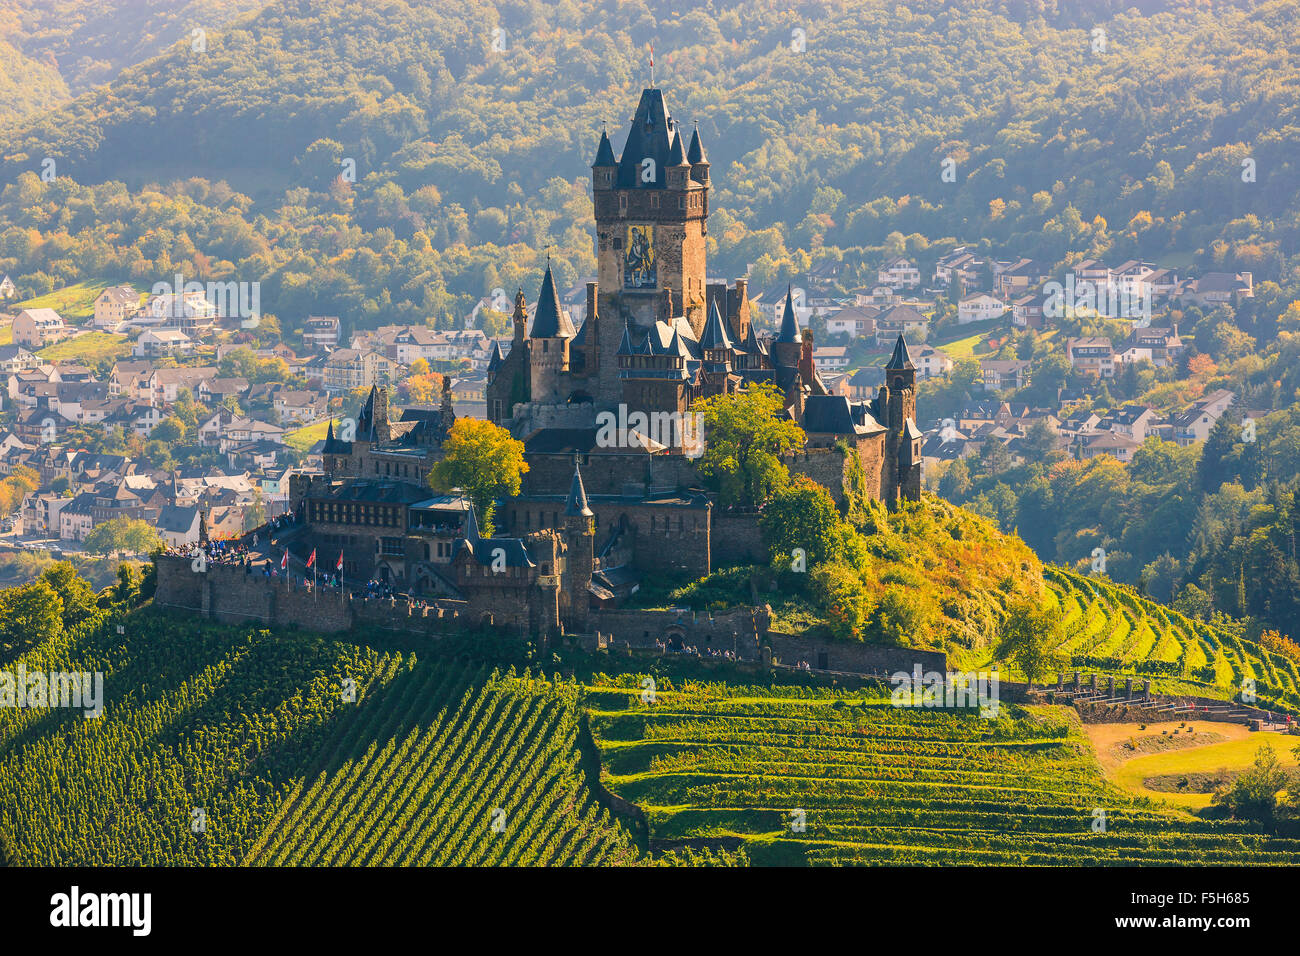 Reichsburg Cochem Castle is more than a castle. It is the largest hill-castle on the Mosel, Germany. - Stock Image